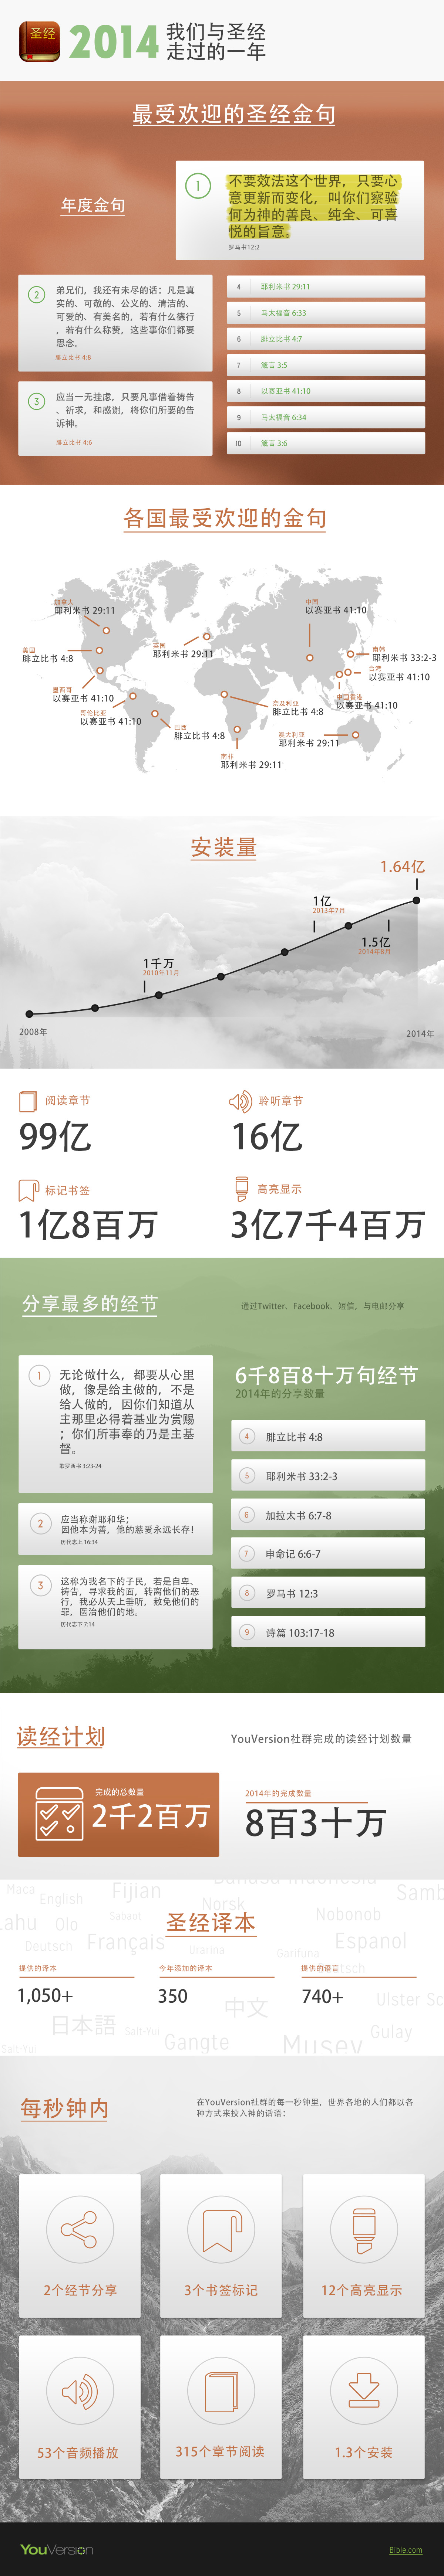 2014-Infographic-Simplified-Chinese